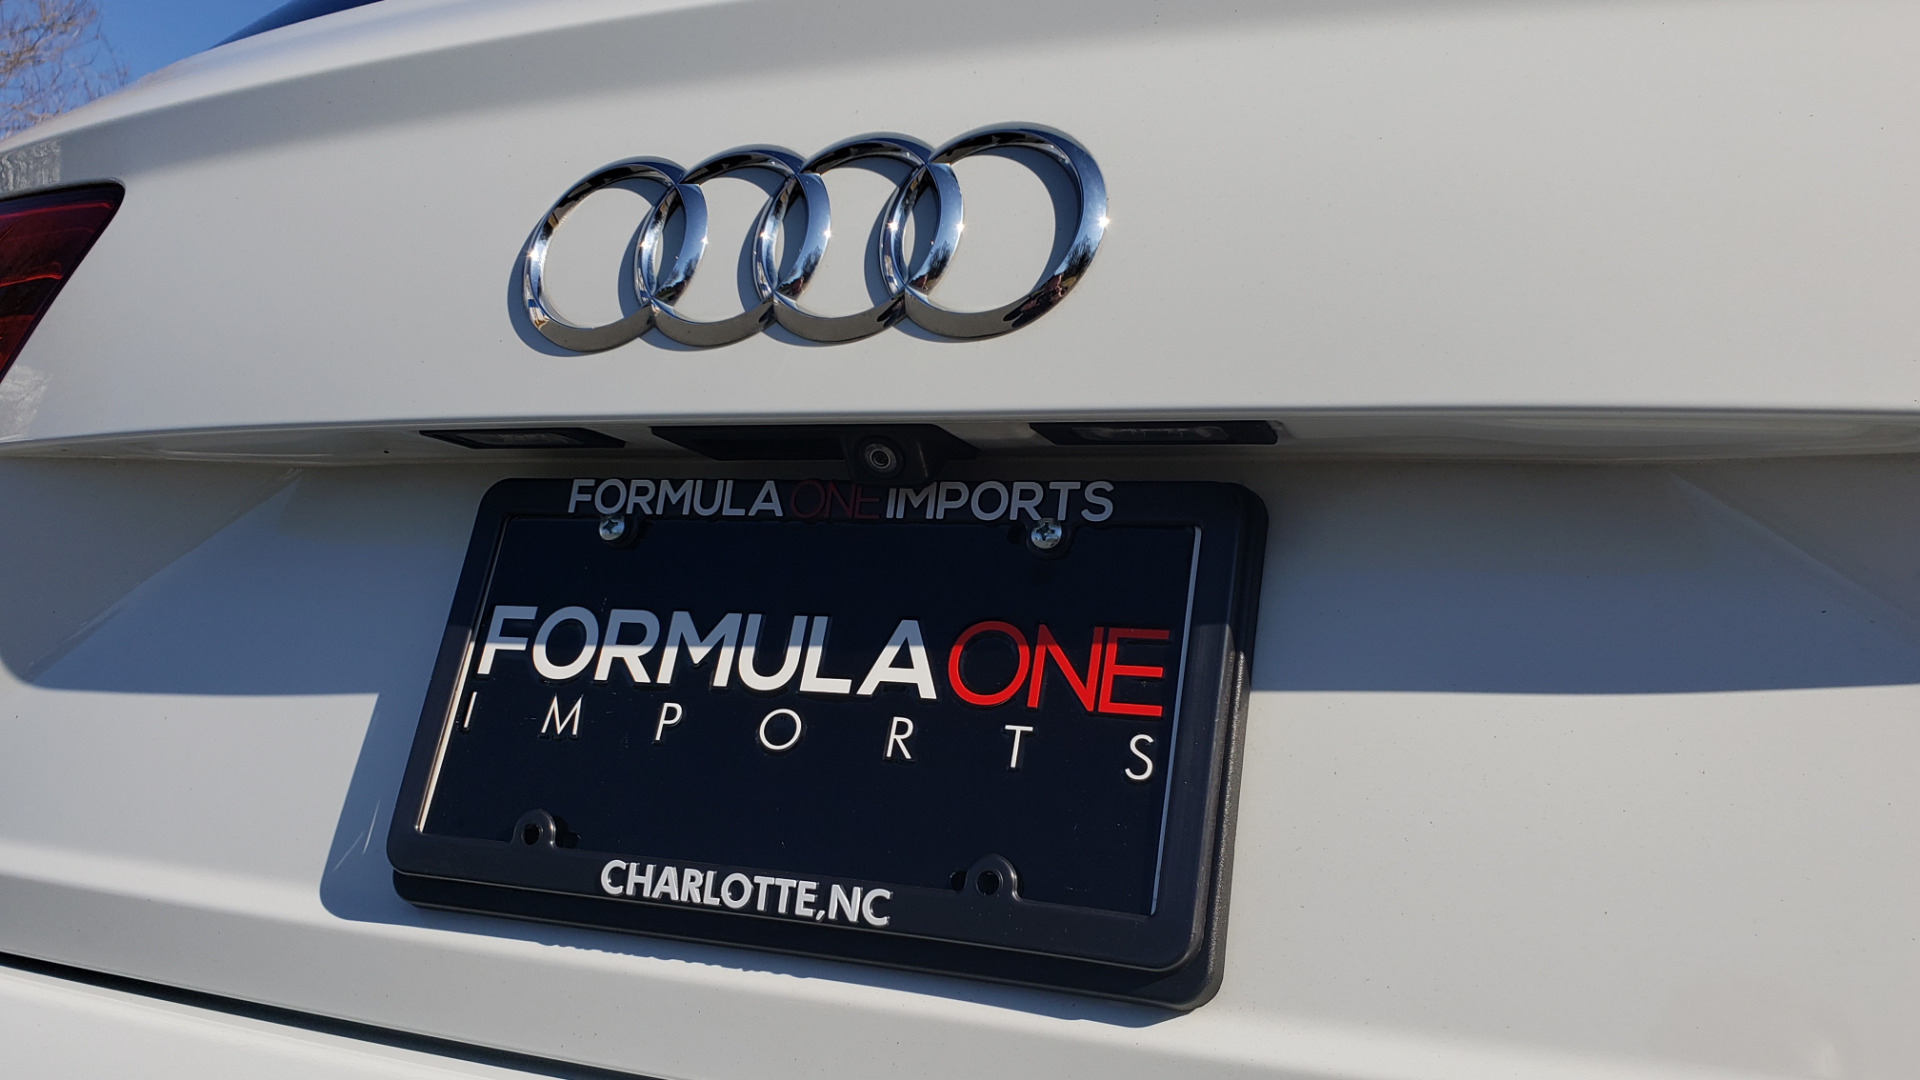 Used 2017 Audi Q7 PRESTIGE 3.0T / NAV / CLD WTHR / SUNROOF / REARVIEW for sale Sold at Formula Imports in Charlotte NC 28227 29